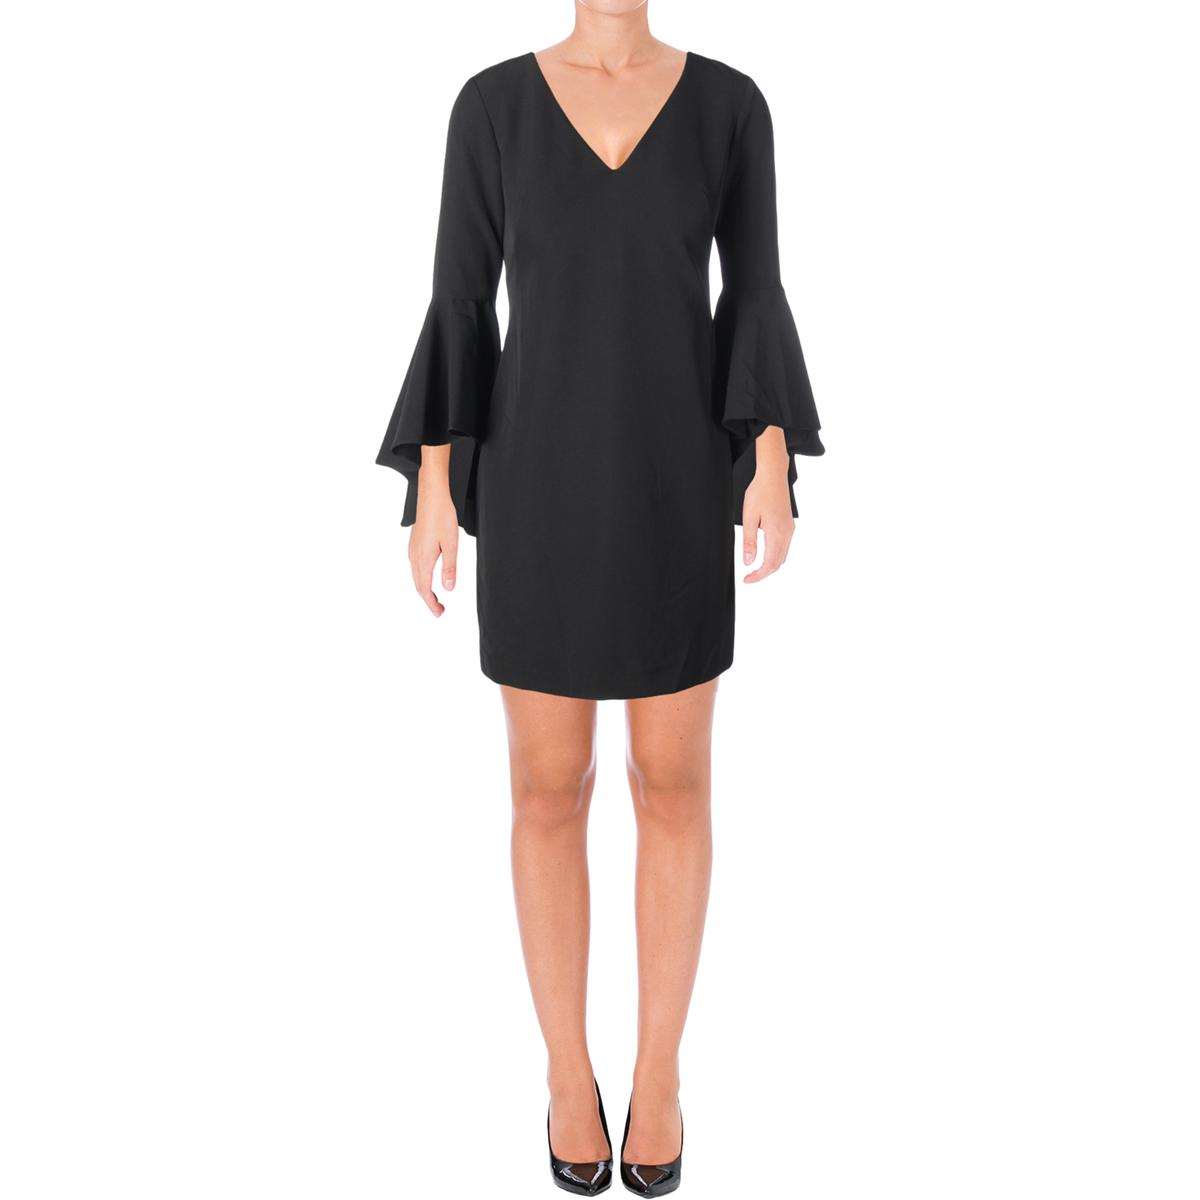 6d9bda76d0 Betsy   Adam Womens Black Bell Sleeves Knee-Length Cocktail Dress 6 BHFO  4580